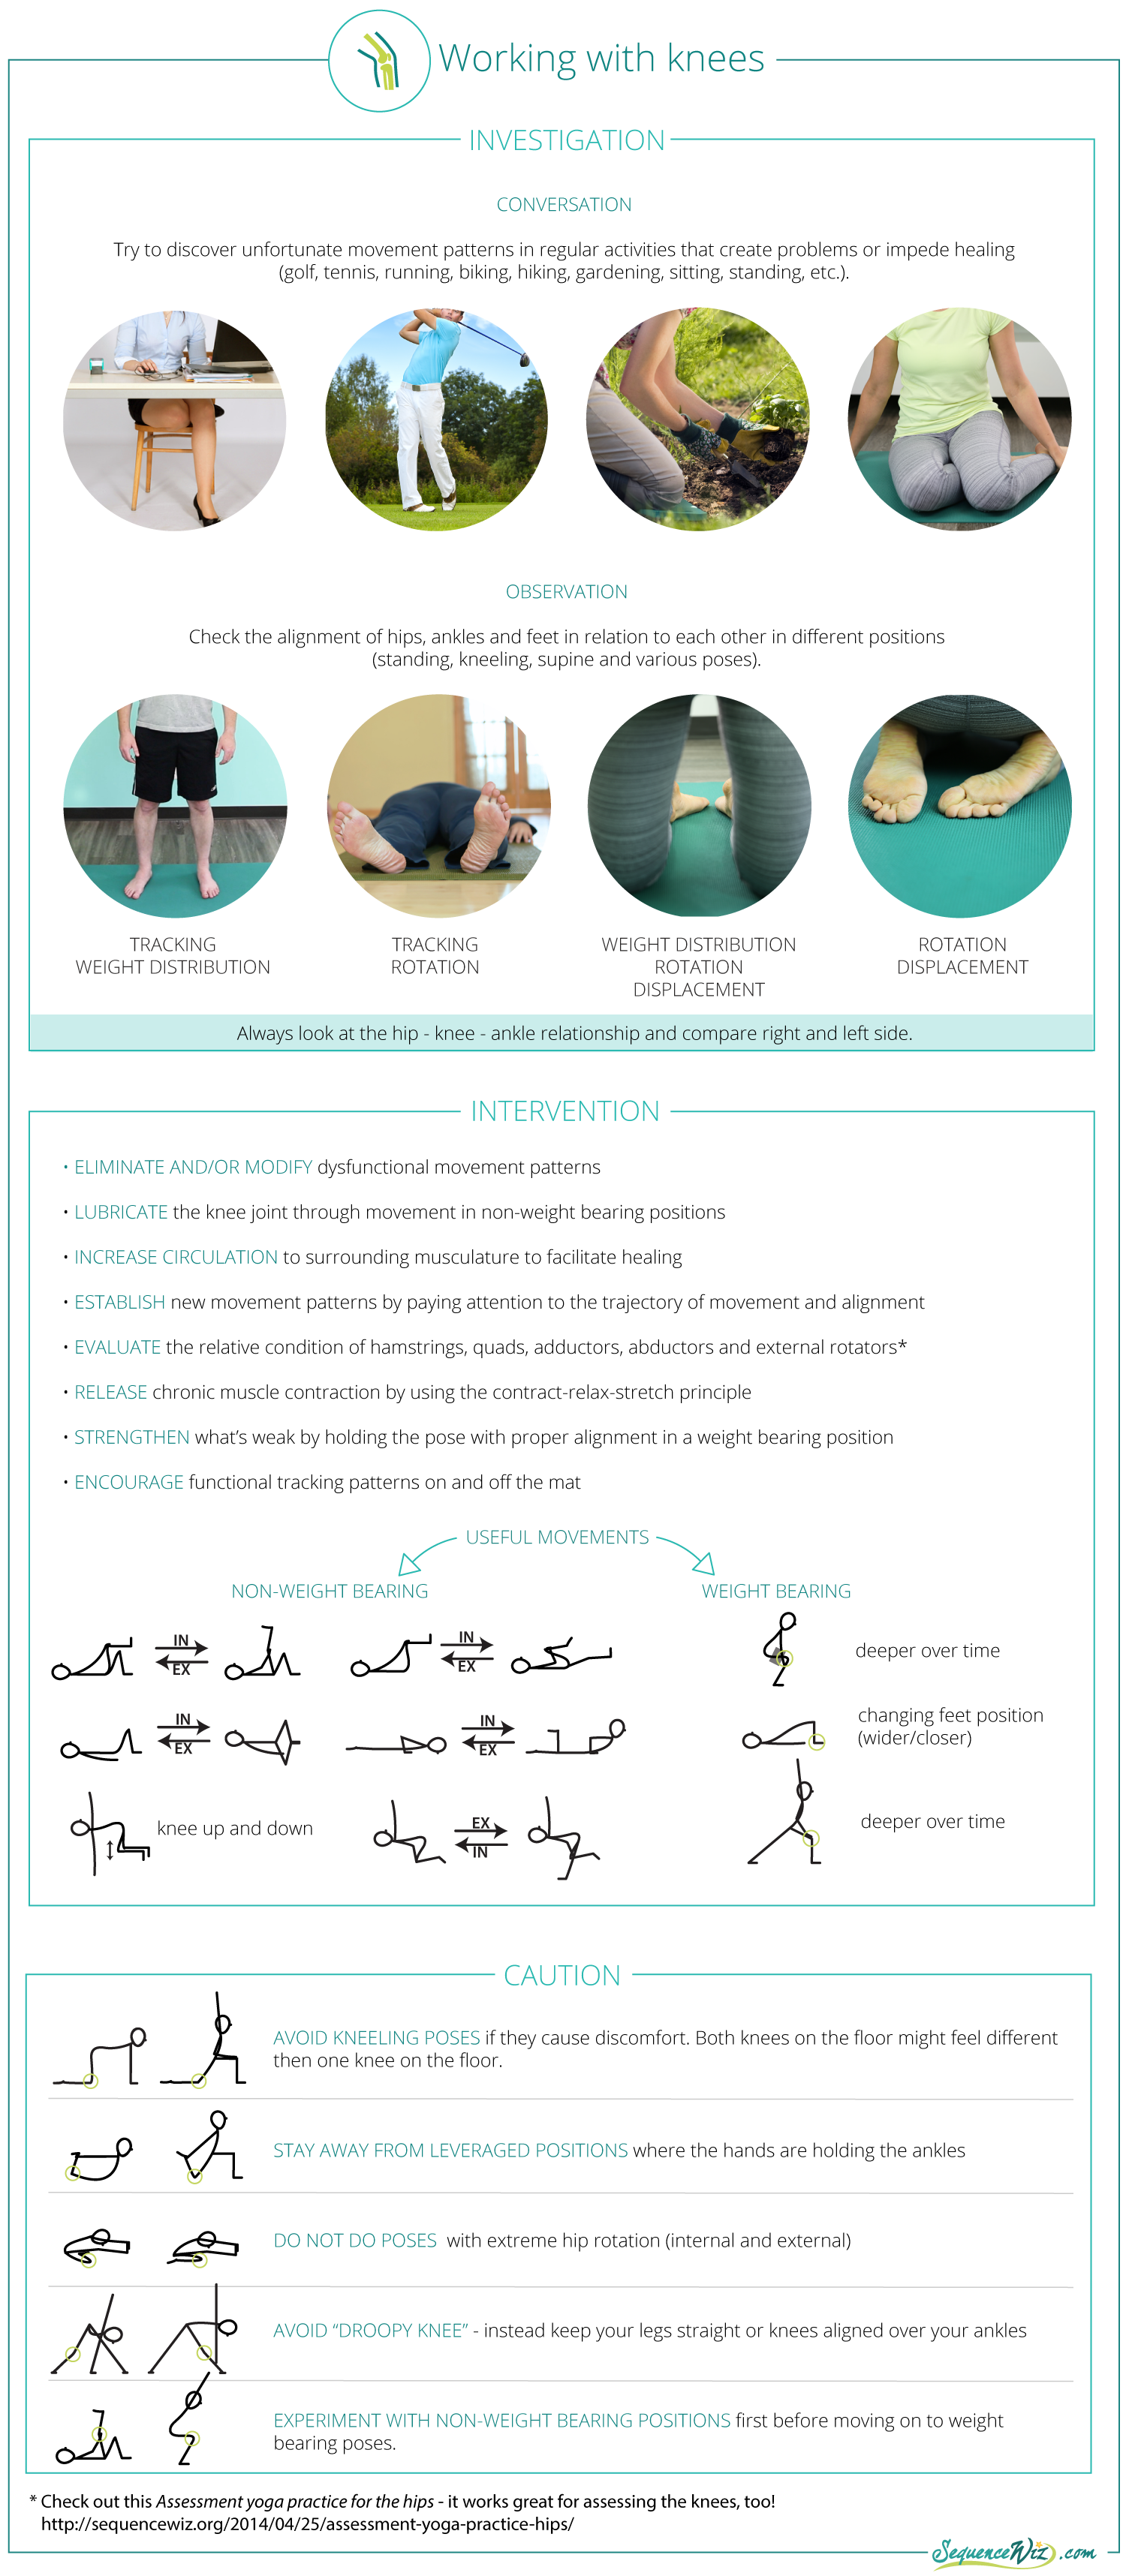 working_with_knees_yoga